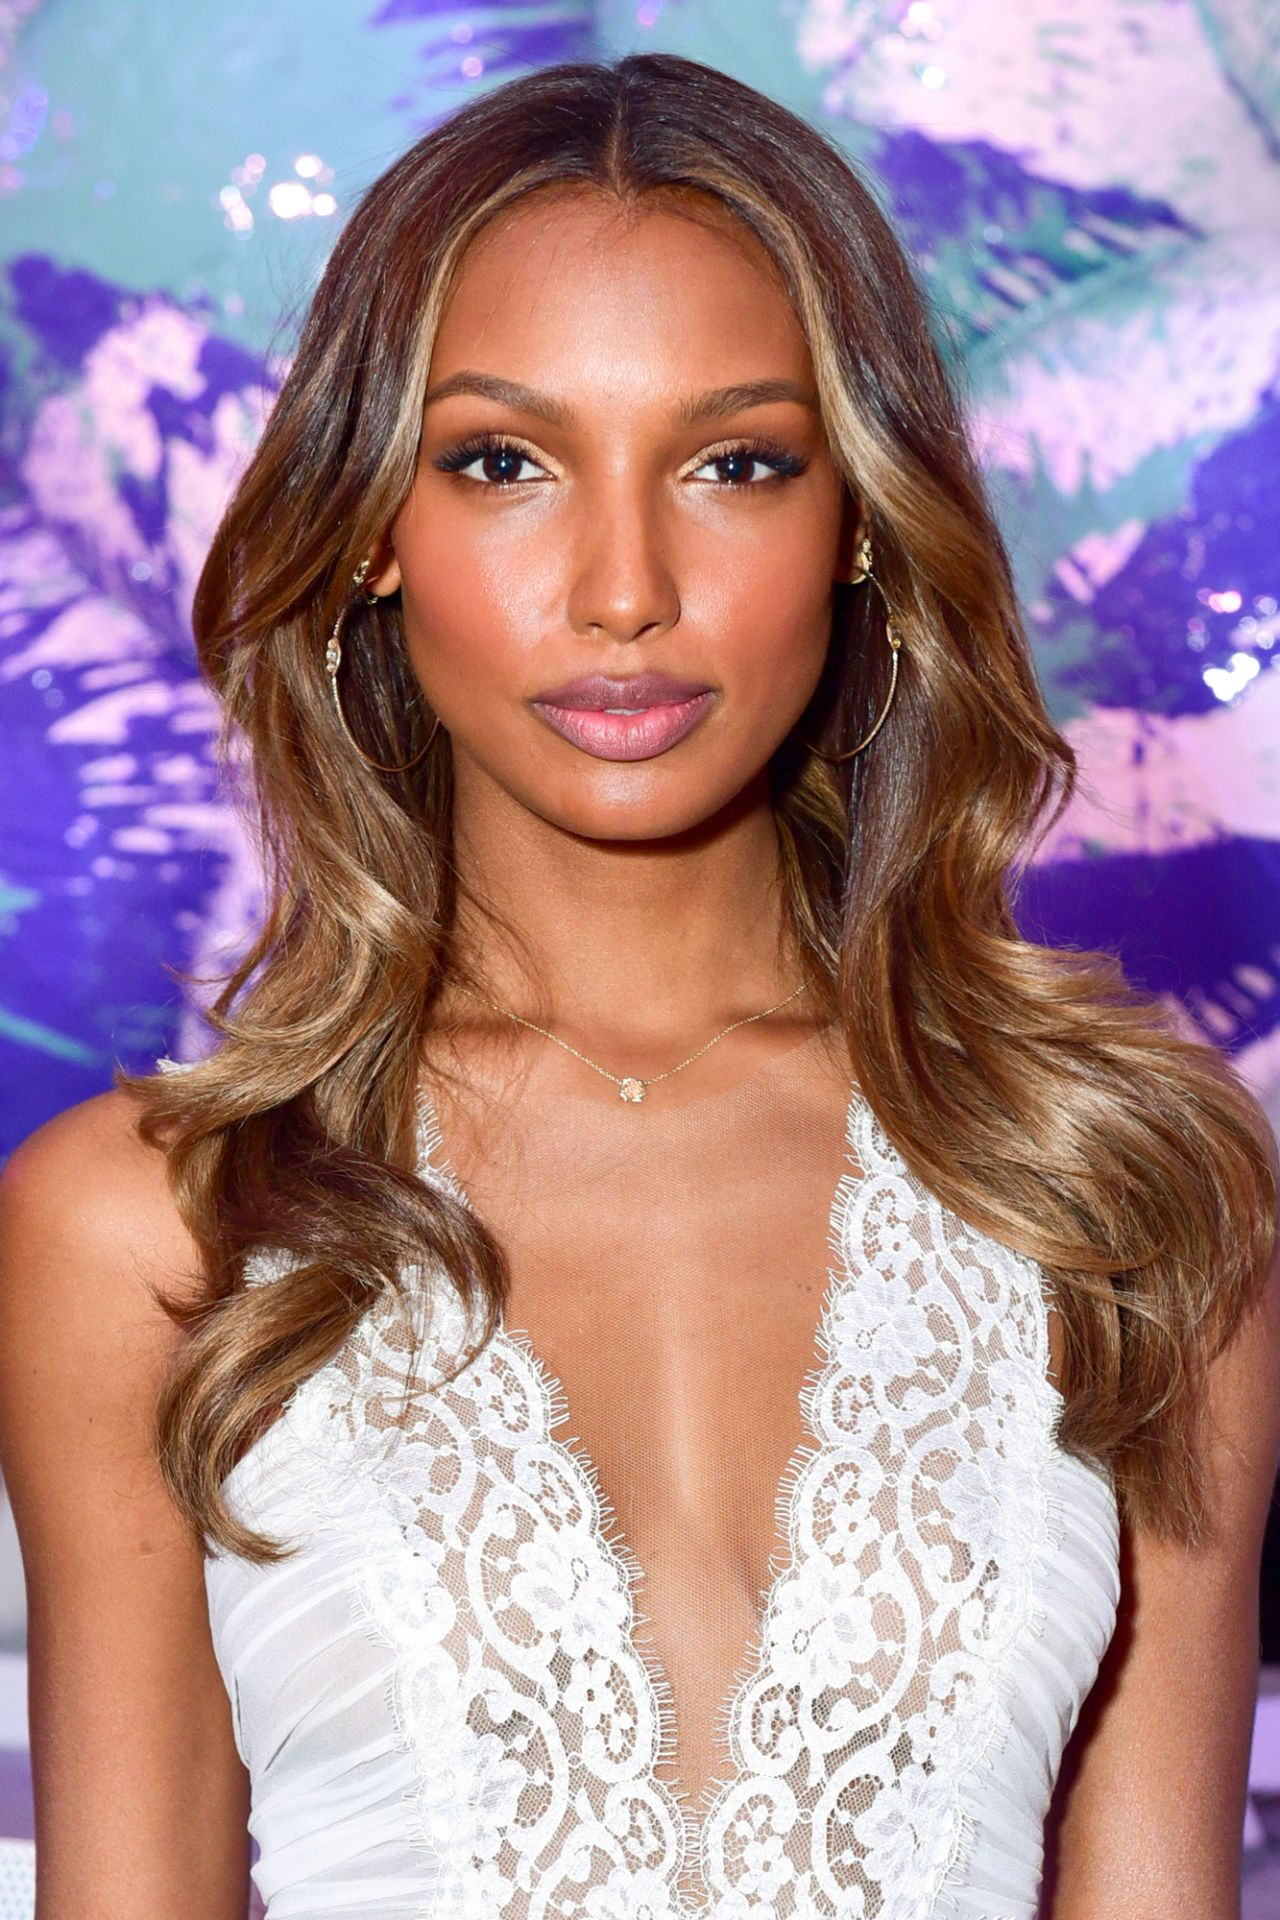 Jasmine Tookes nude (22 photo), Ass, Cleavage, Boobs, cleavage 2019